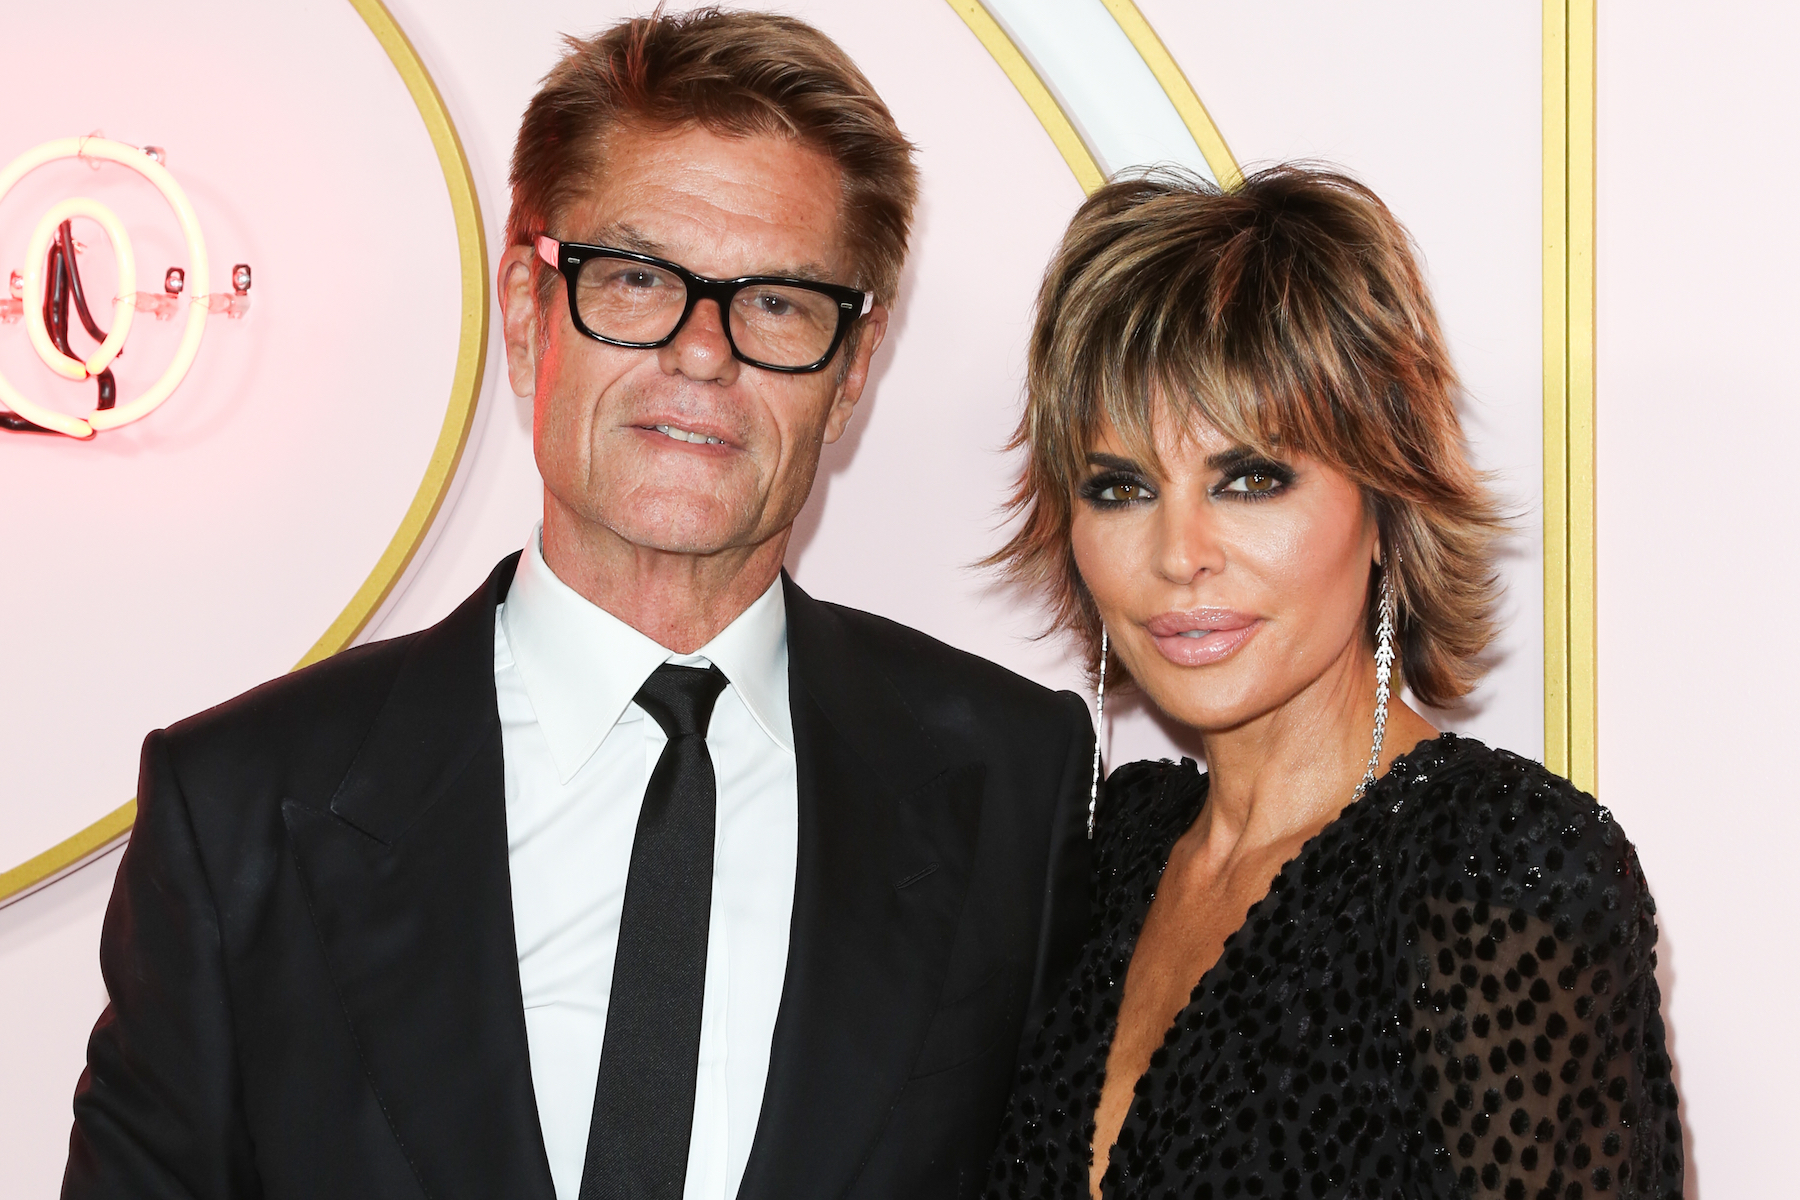 Harry Hamlin and Lisa Rinna Respond to Nicollette Sheridan's Cheating Denial - Harry Hamlin and Lisa Rinna attend the Amazon Prime Video post 2018 Emmy Awards party at Cecconi's on September 17, 2018 in West Hollywood, California.